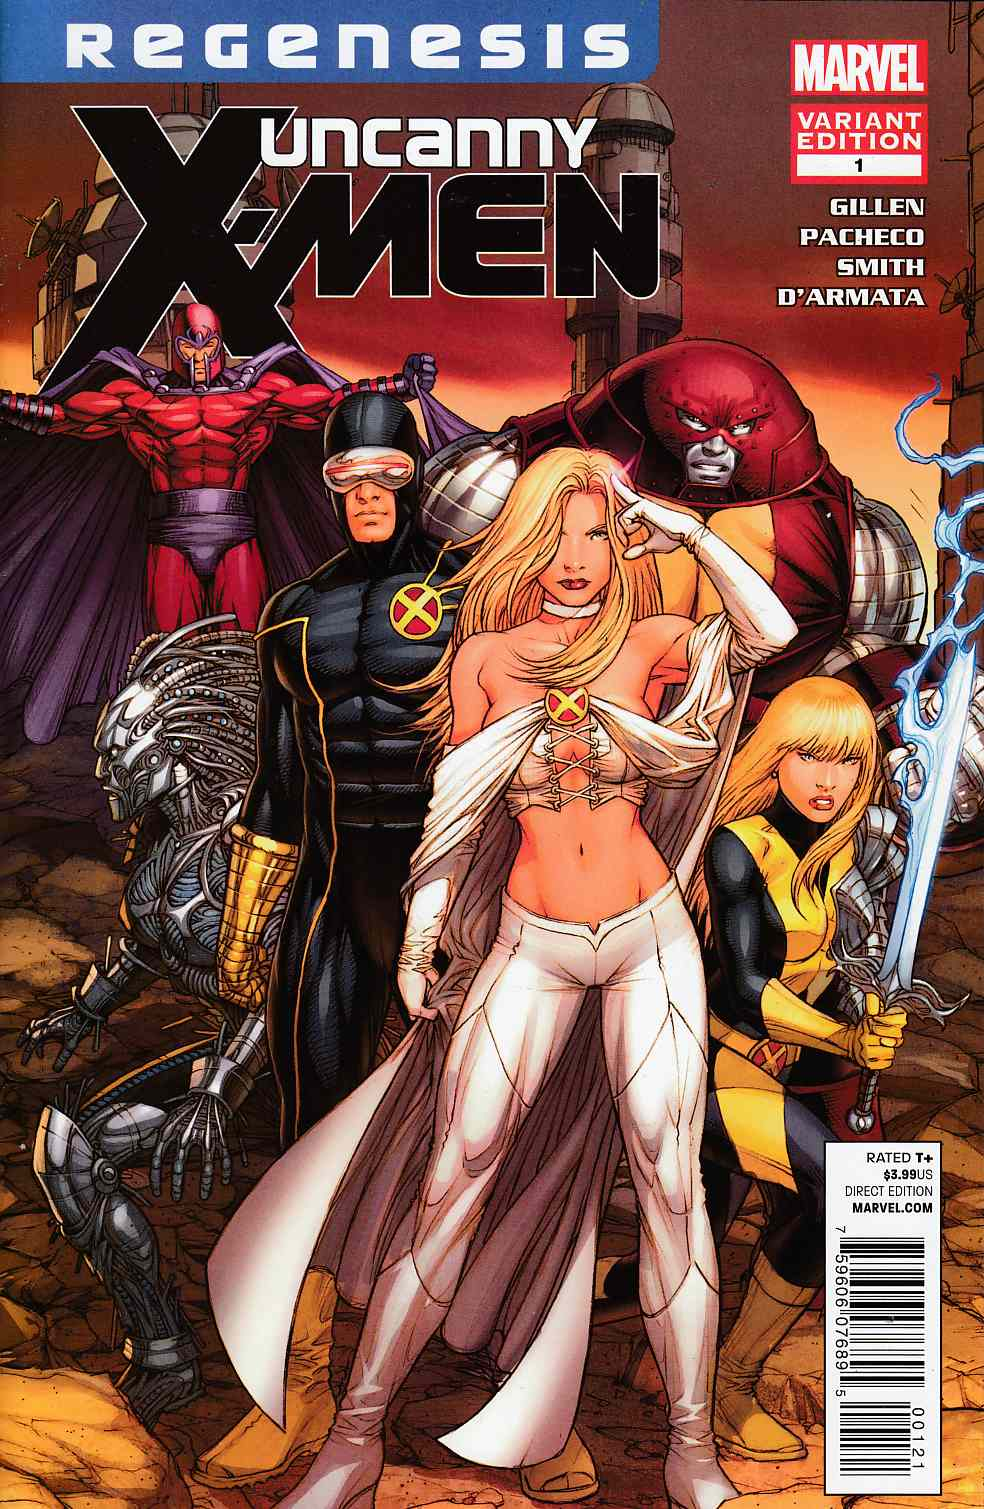 Uncanny X-Men #1 Regenesis Blue Keown Variant Cover Very Fine (8.0) [Marvel Comic] THUMBNAIL